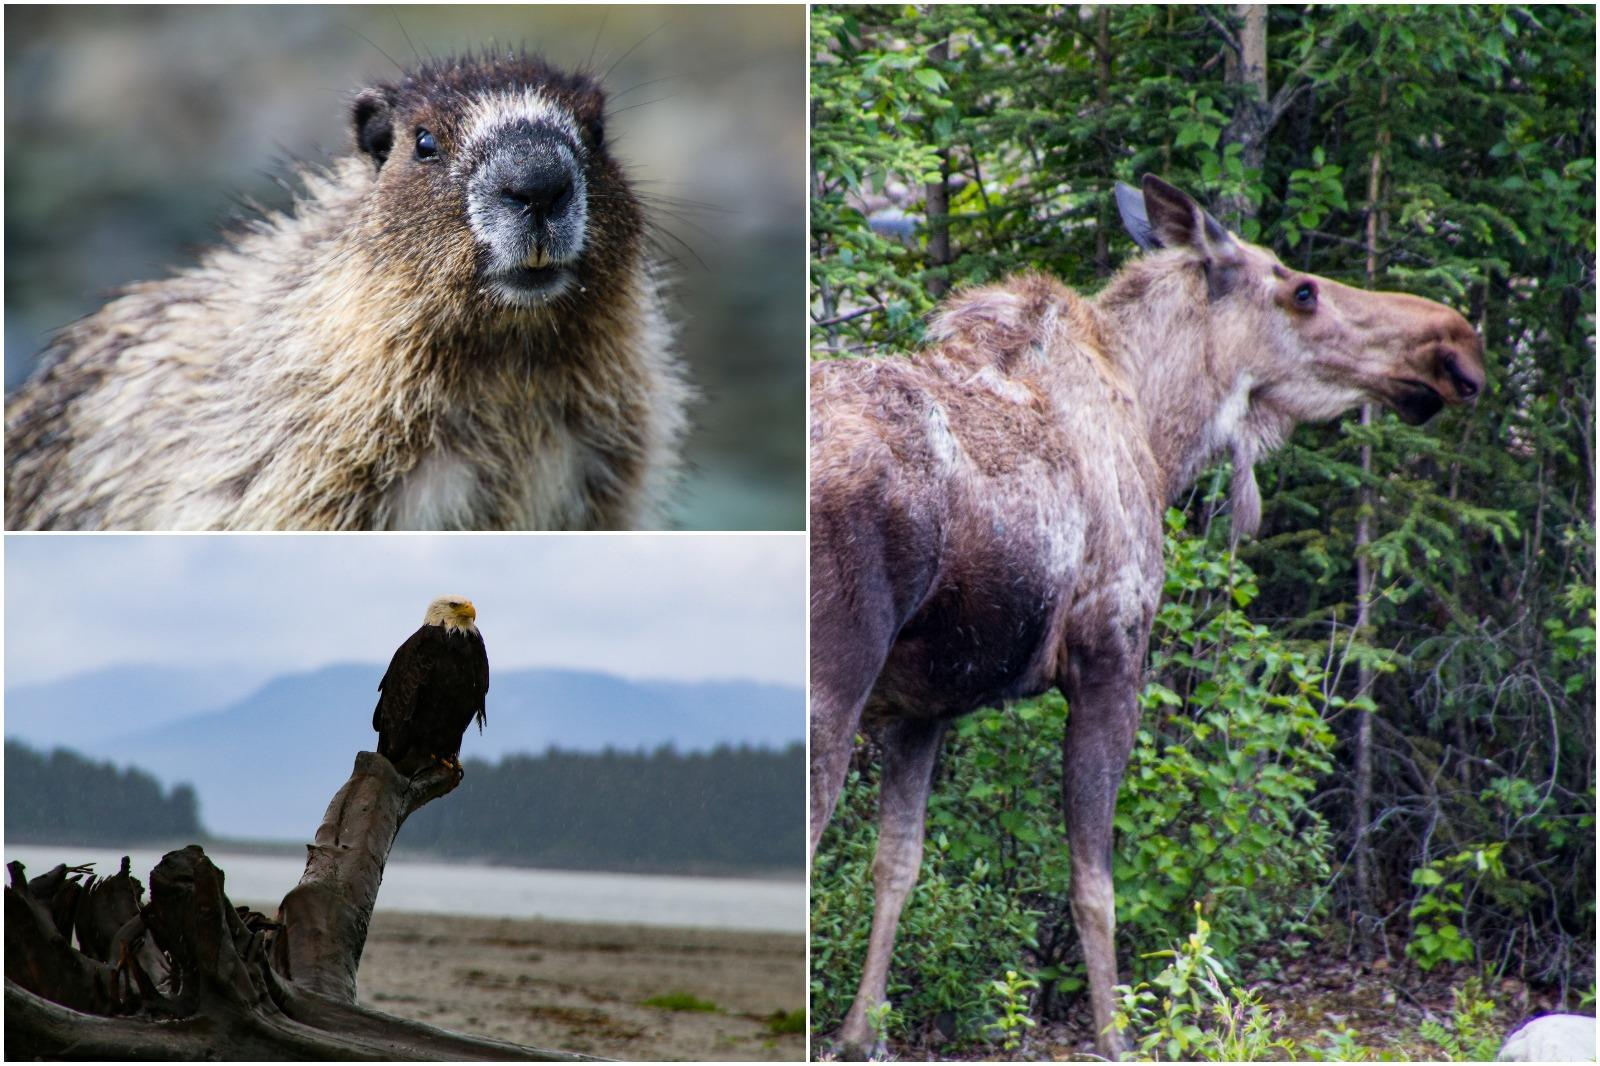 Wildlife seen during an Alaska float plane tour, including a marmot, eagle, and moose.